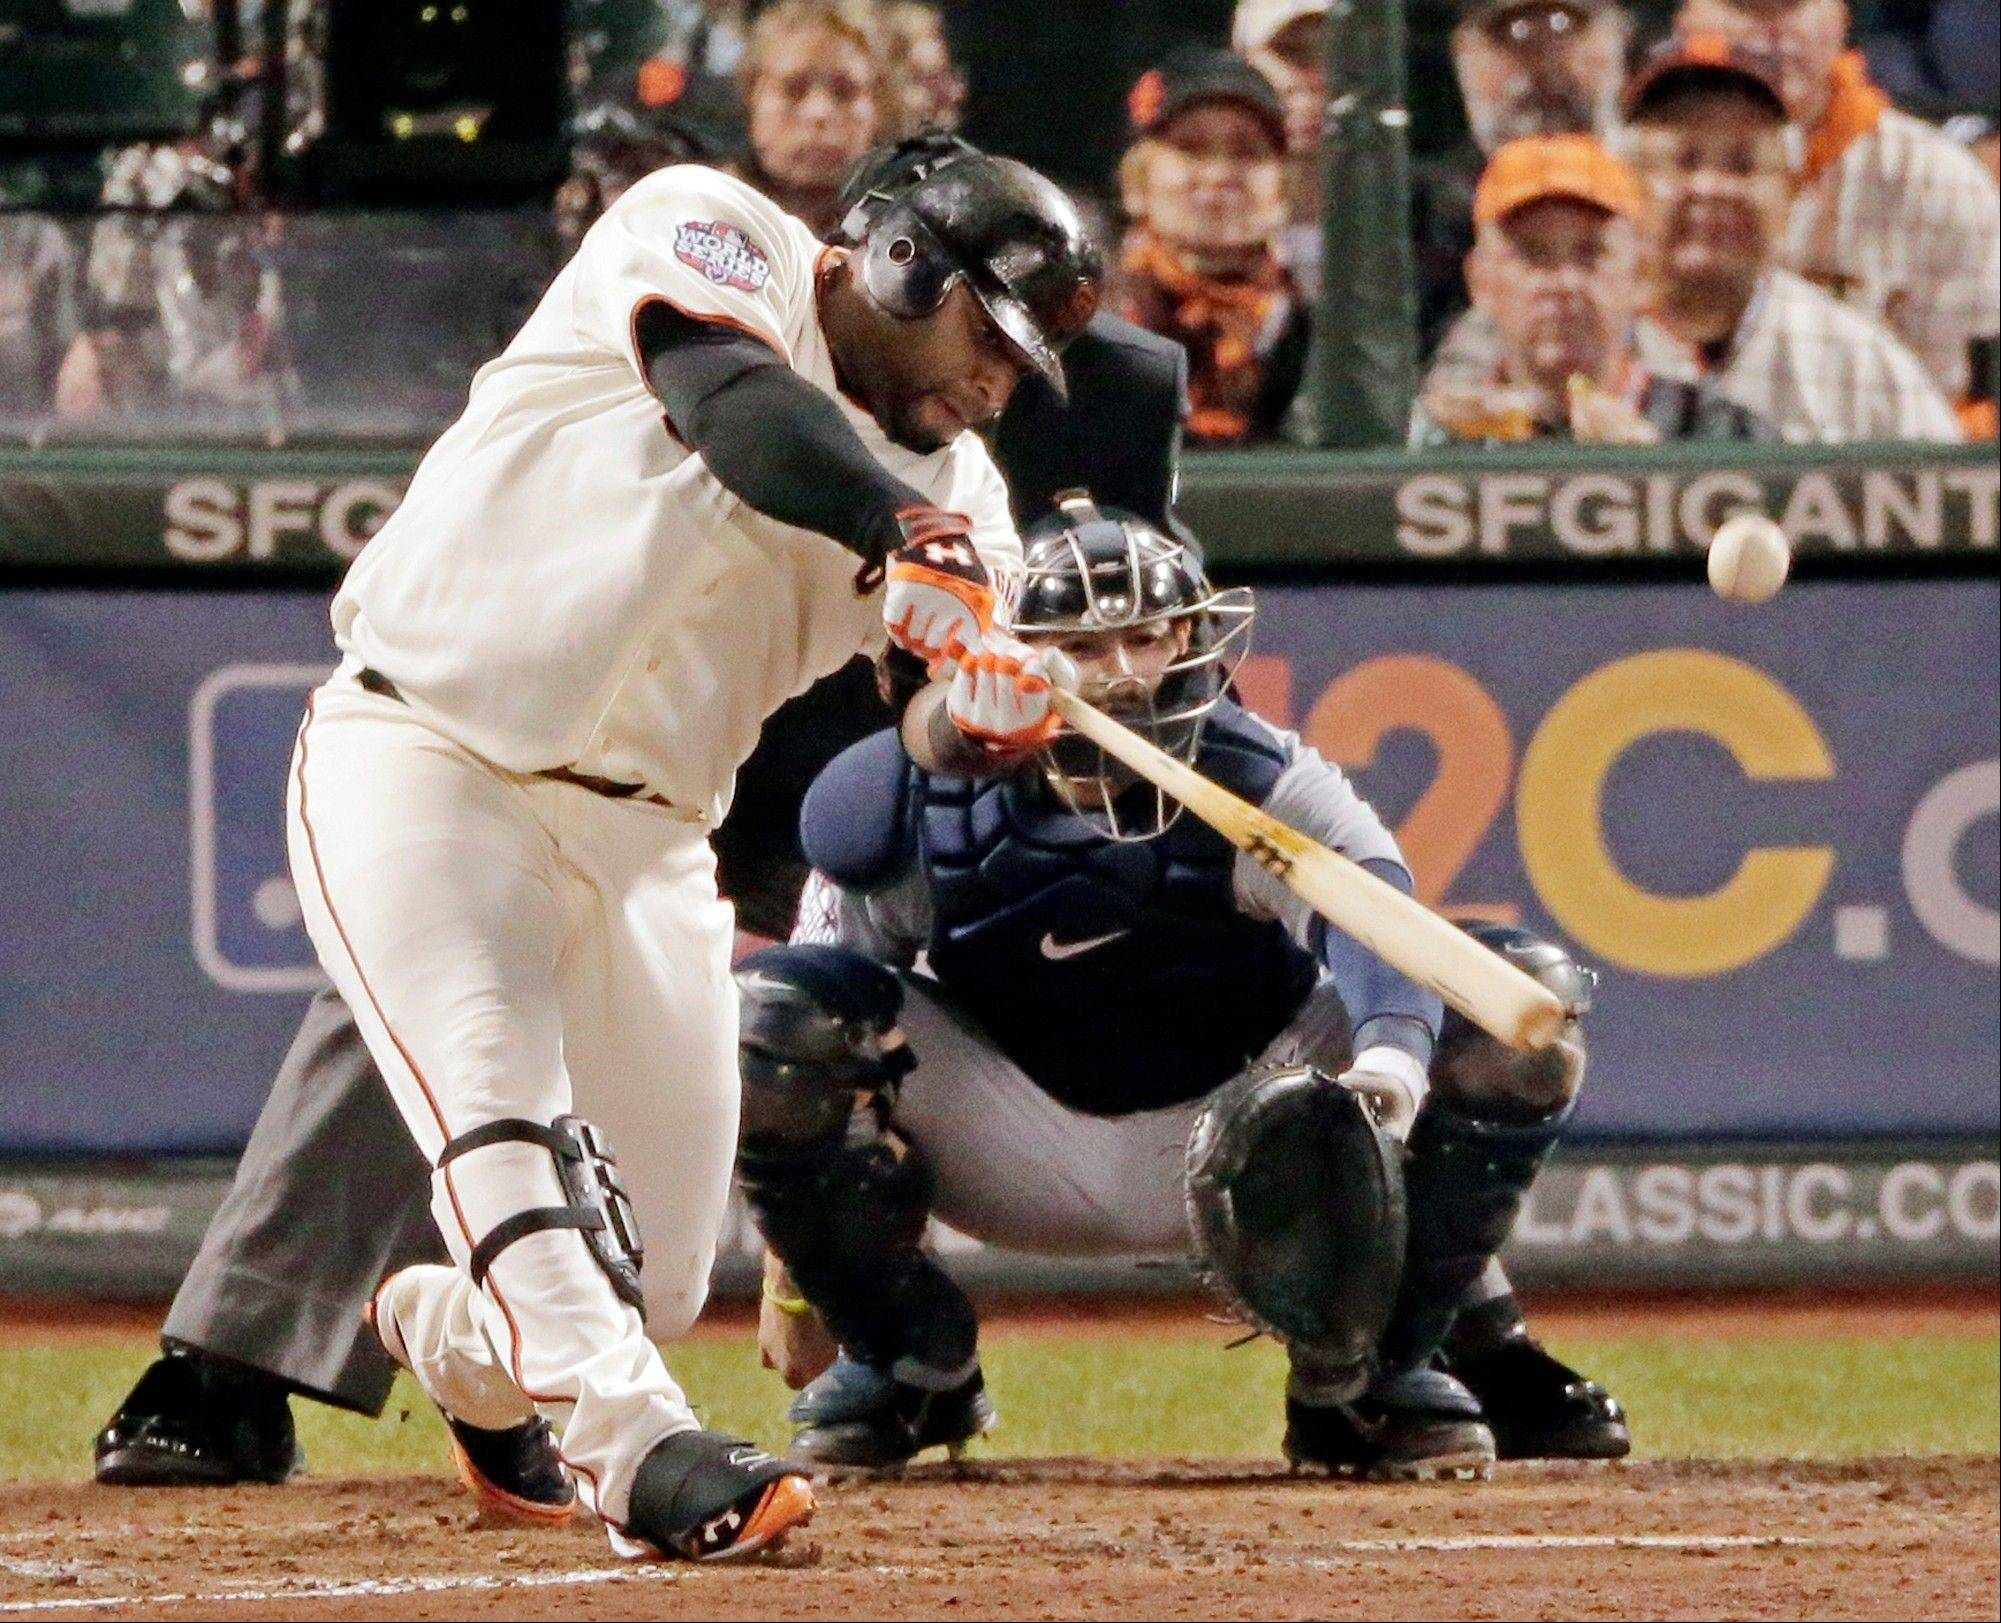 San Francisco Giants third baseman Pablo Sandoval hits a solo home run Wednesday during the sixth inning of Game 1 the World Series in San Francisco. The Giants beat the Detroit Tigers 8-3.